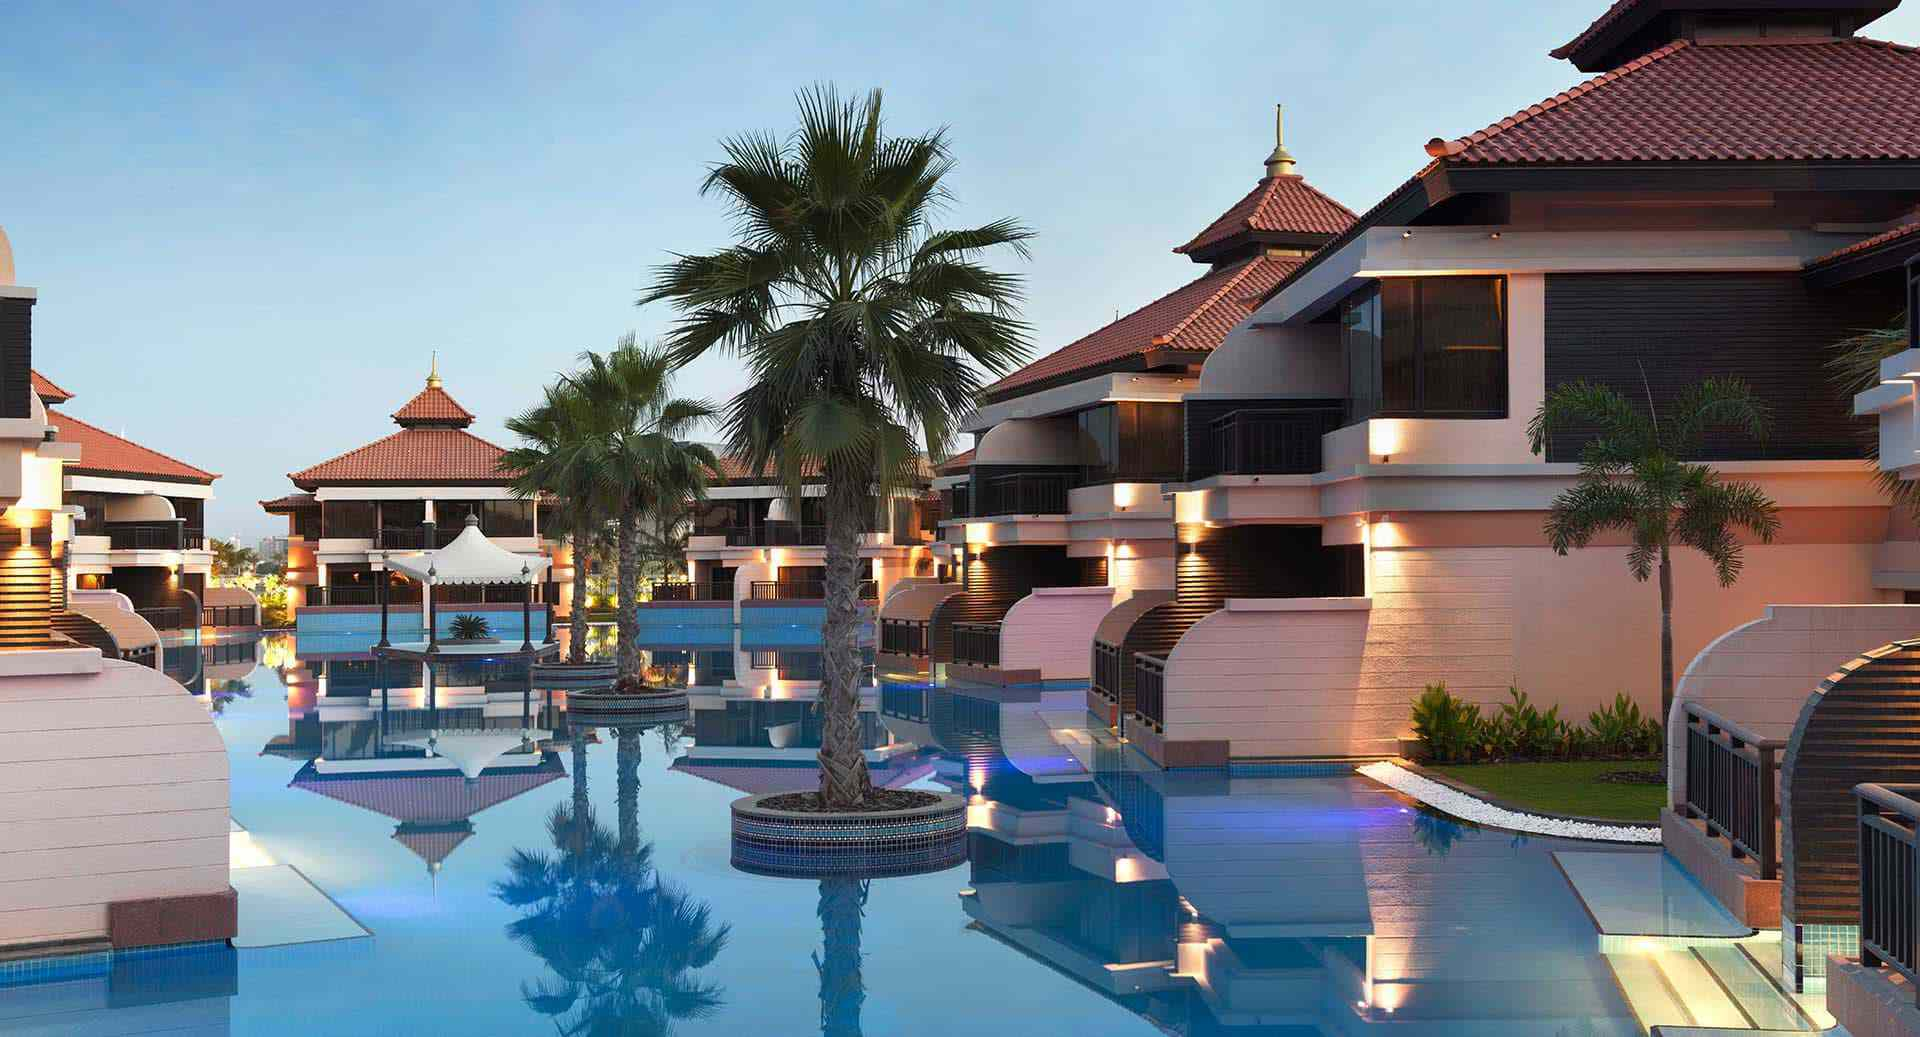 collection of identical overwater villas at the Dubai resort, Anantara the Palm